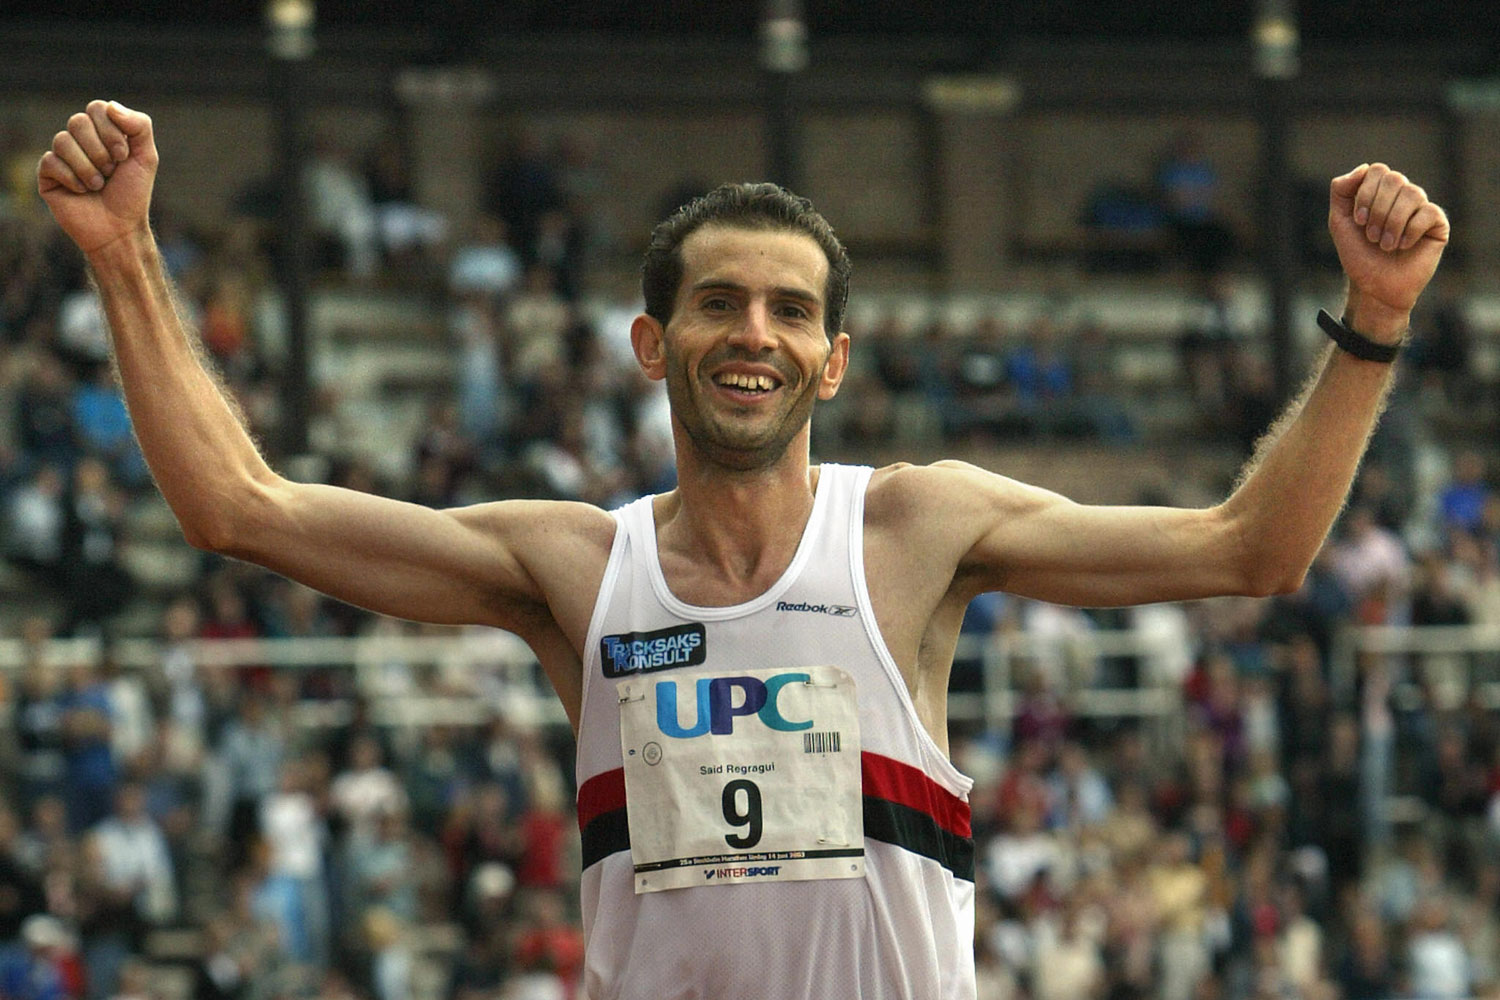 Said Regragui crosses the finish line in third place in his first ever marathon race at the Stockholm Marathon in June 2003.